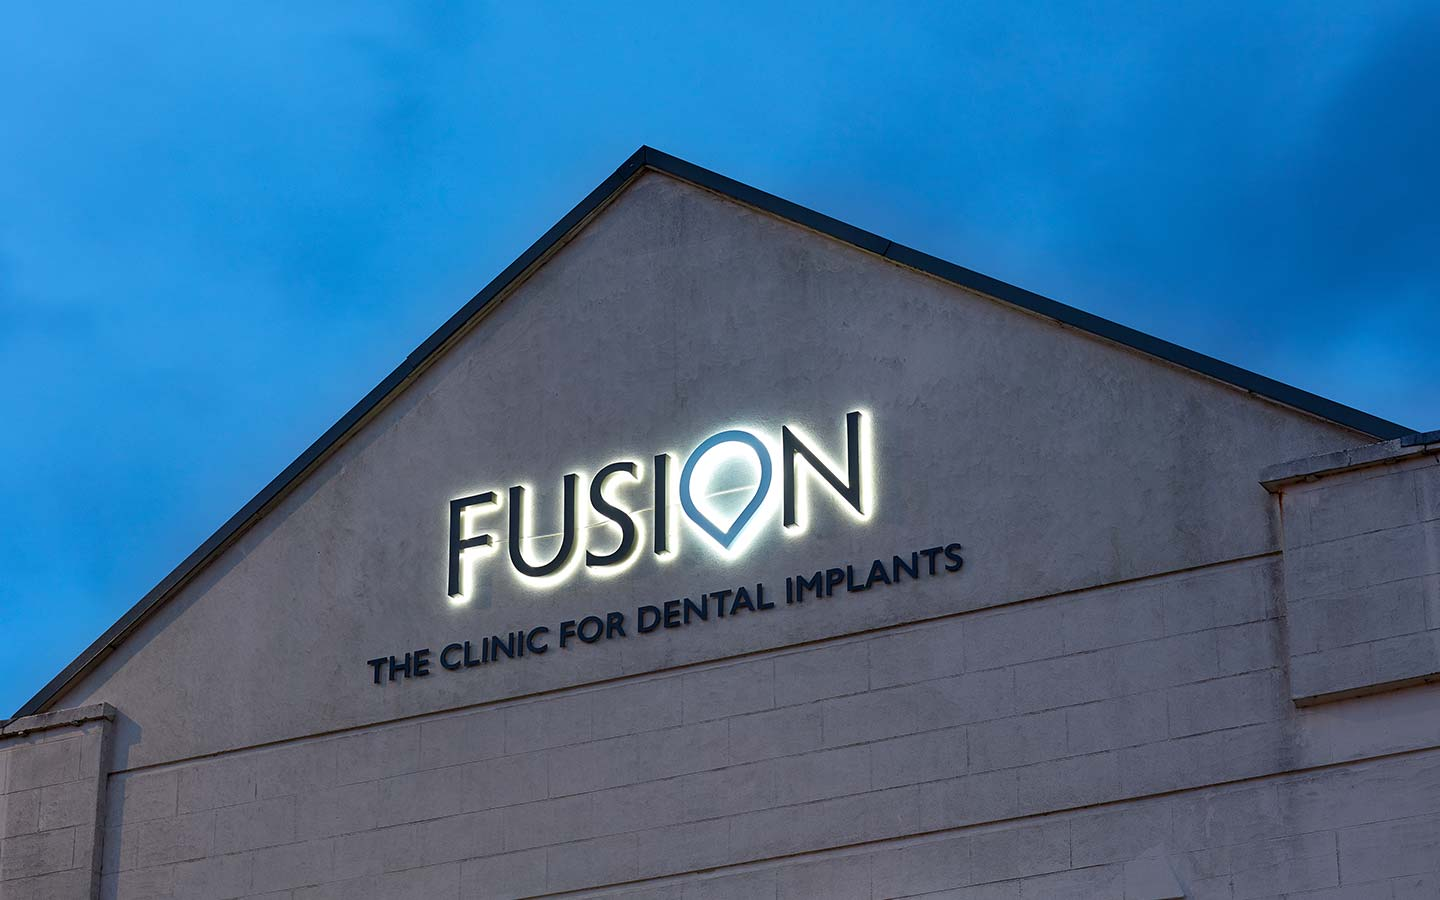 Fusion Dentistry sign on side of building